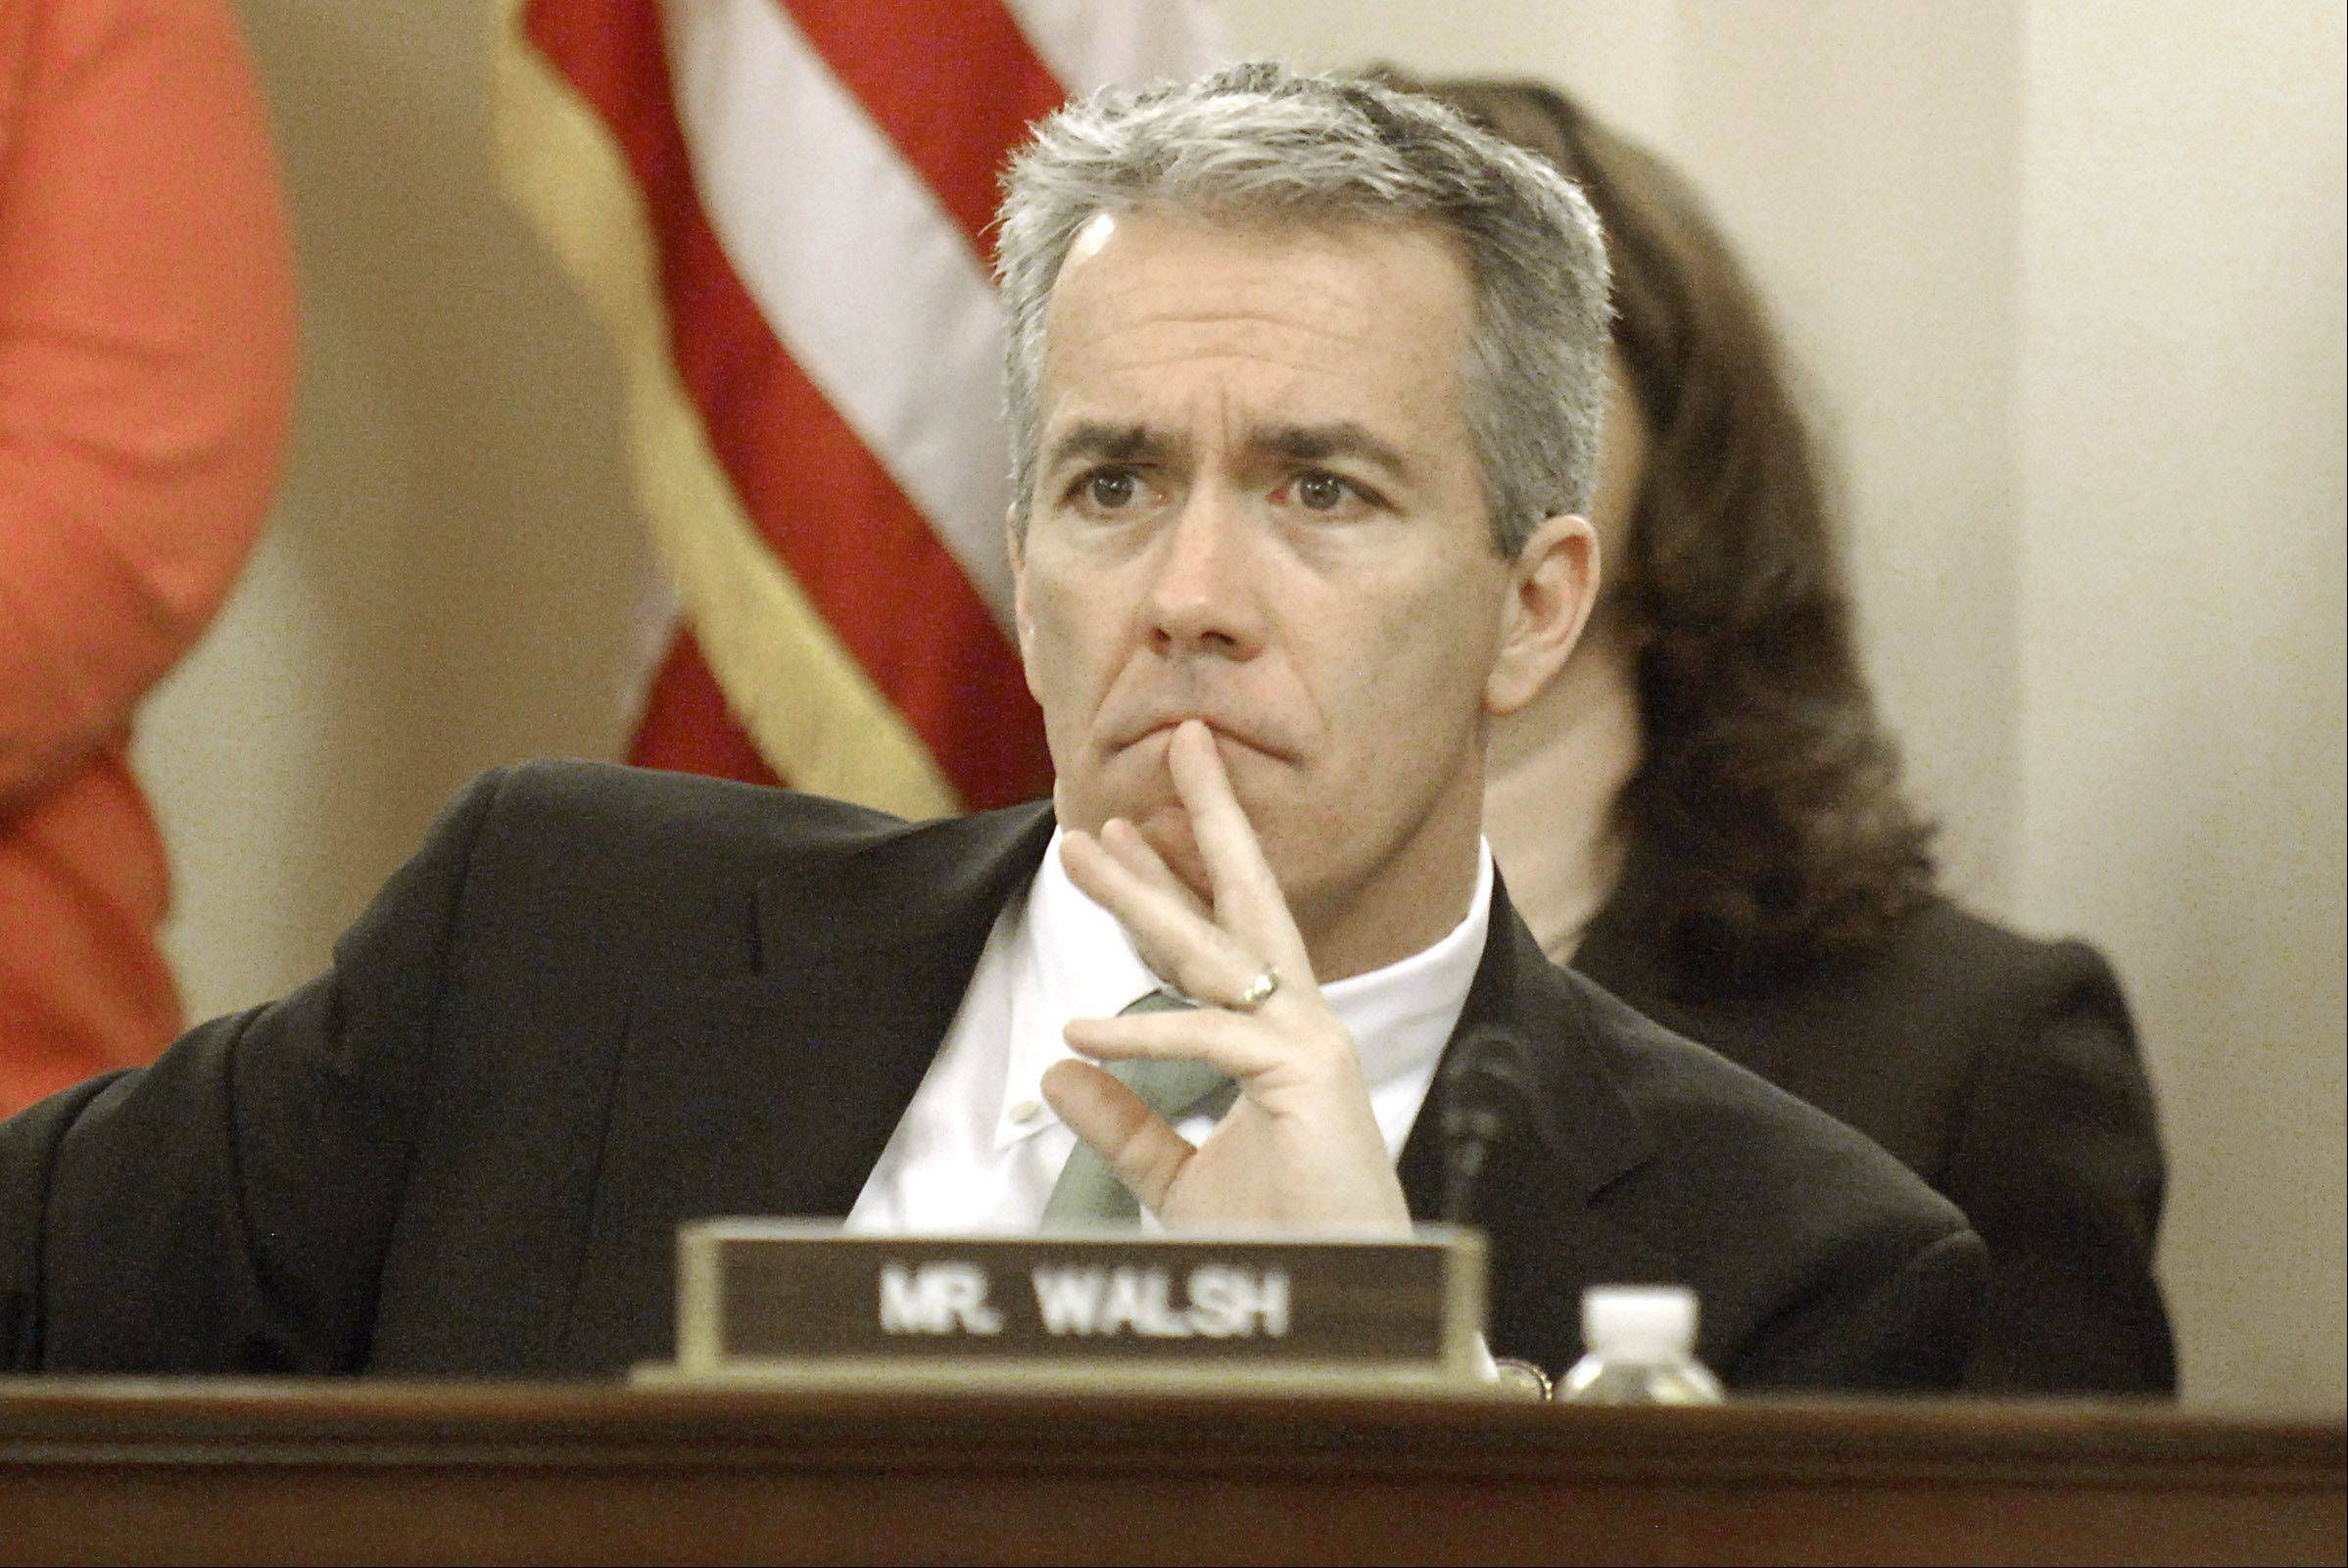 Joe Walsh: 'My constituents are my bosses'